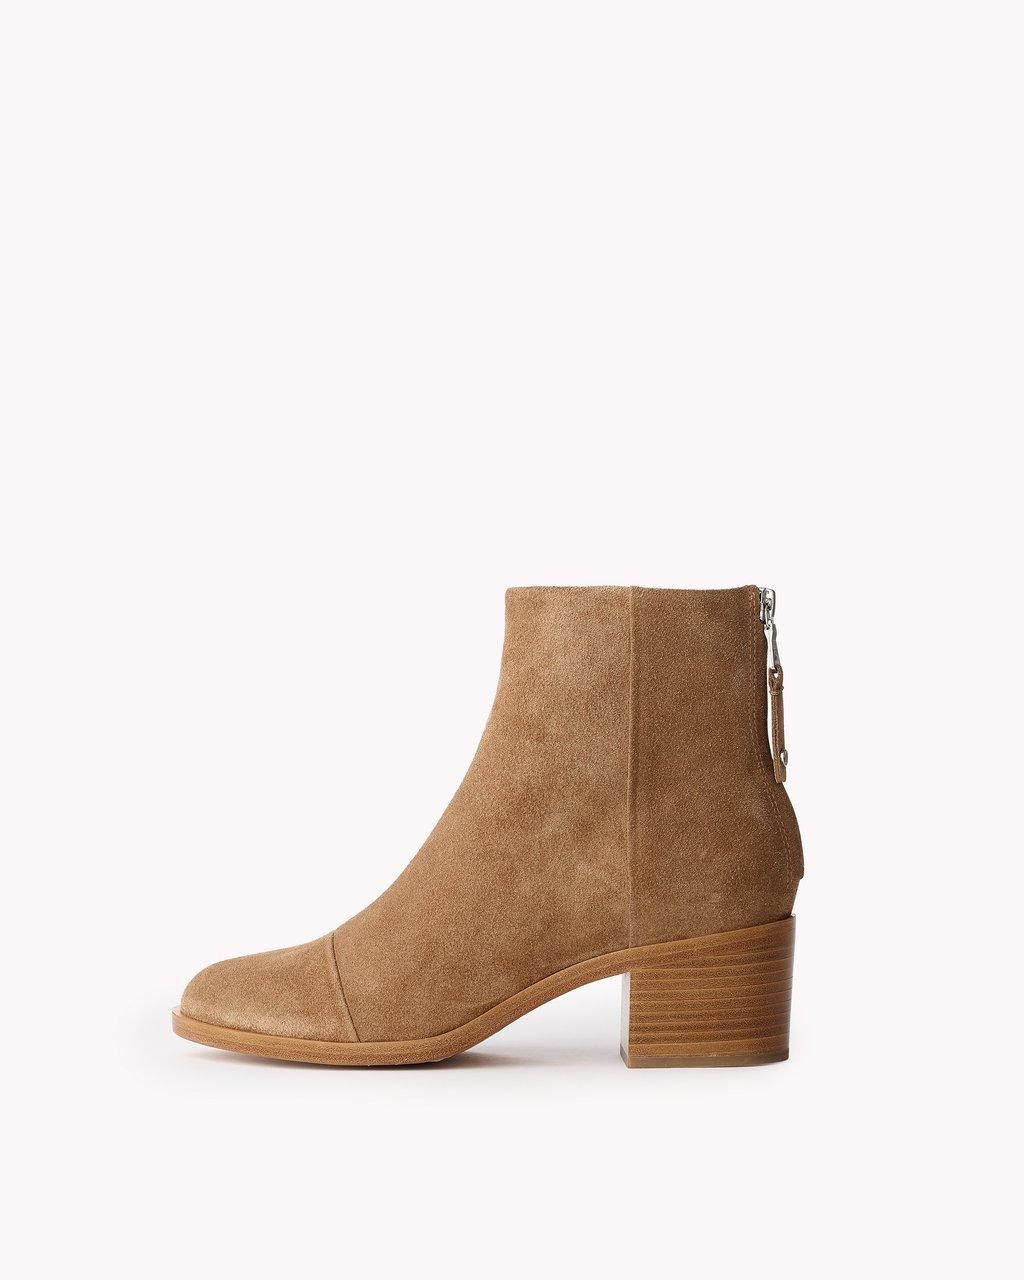 ASHBY BOOT - Suede